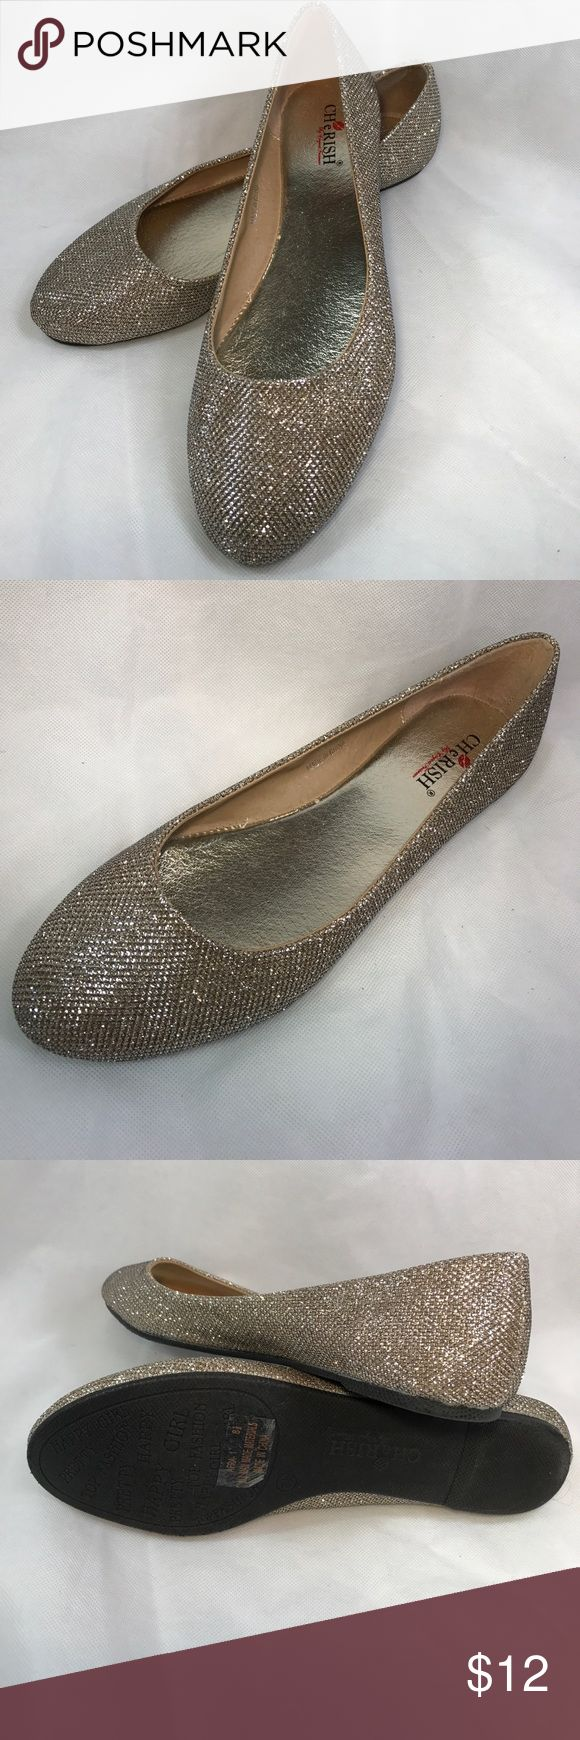 Elegant  Silver Sparkle Flats Never been worn silver sparkle flats. Add some glitz to your jeans! Cherish Shoes Flats & Loafers